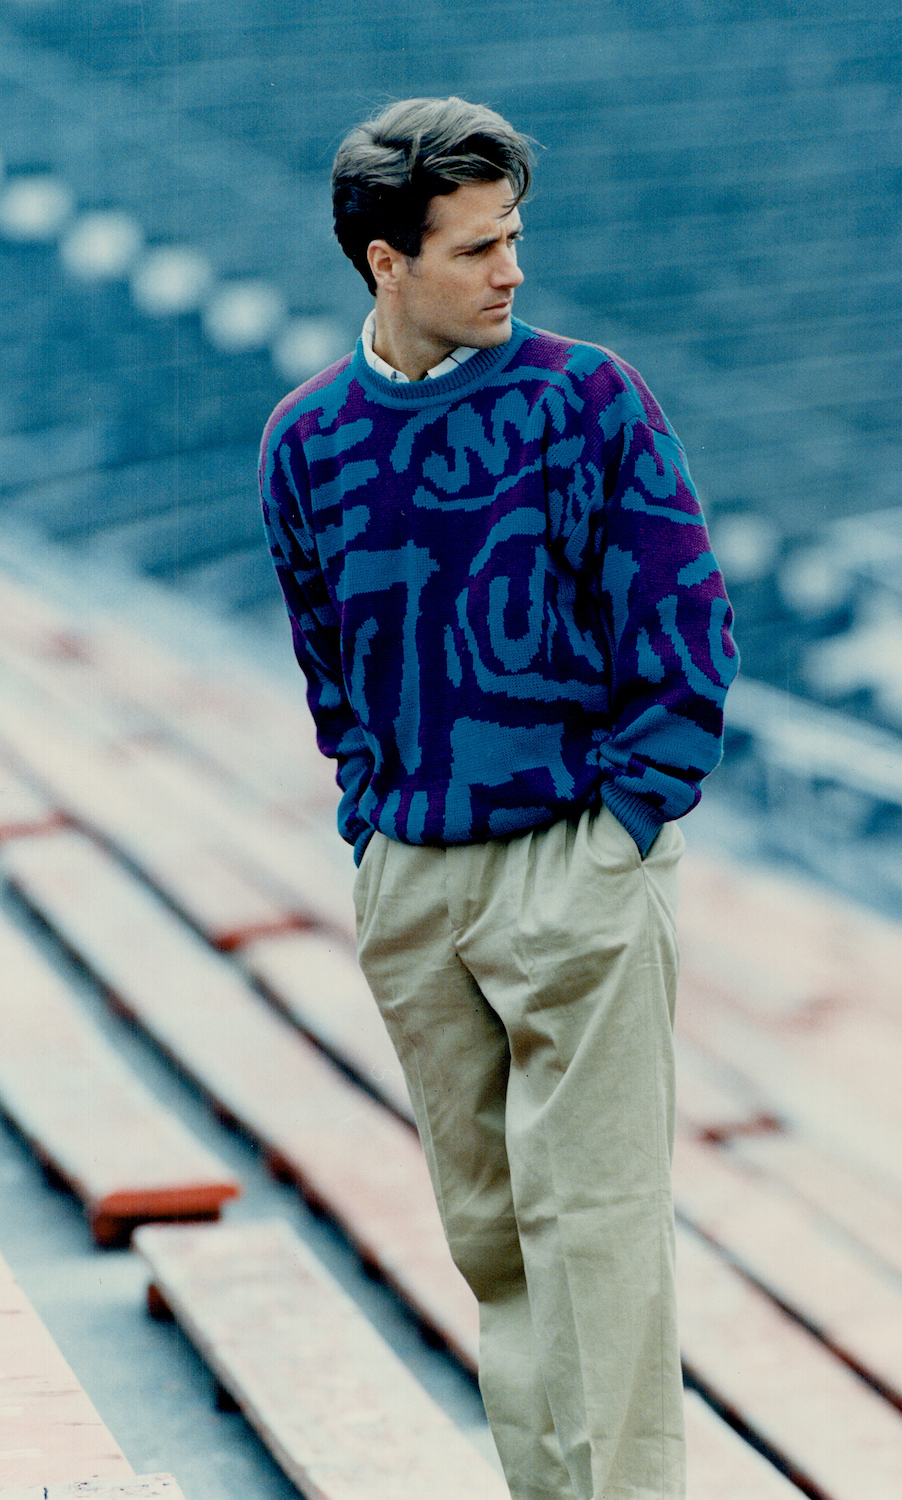 1980s Fashion 10 Fashion Trends from the 80s for Men